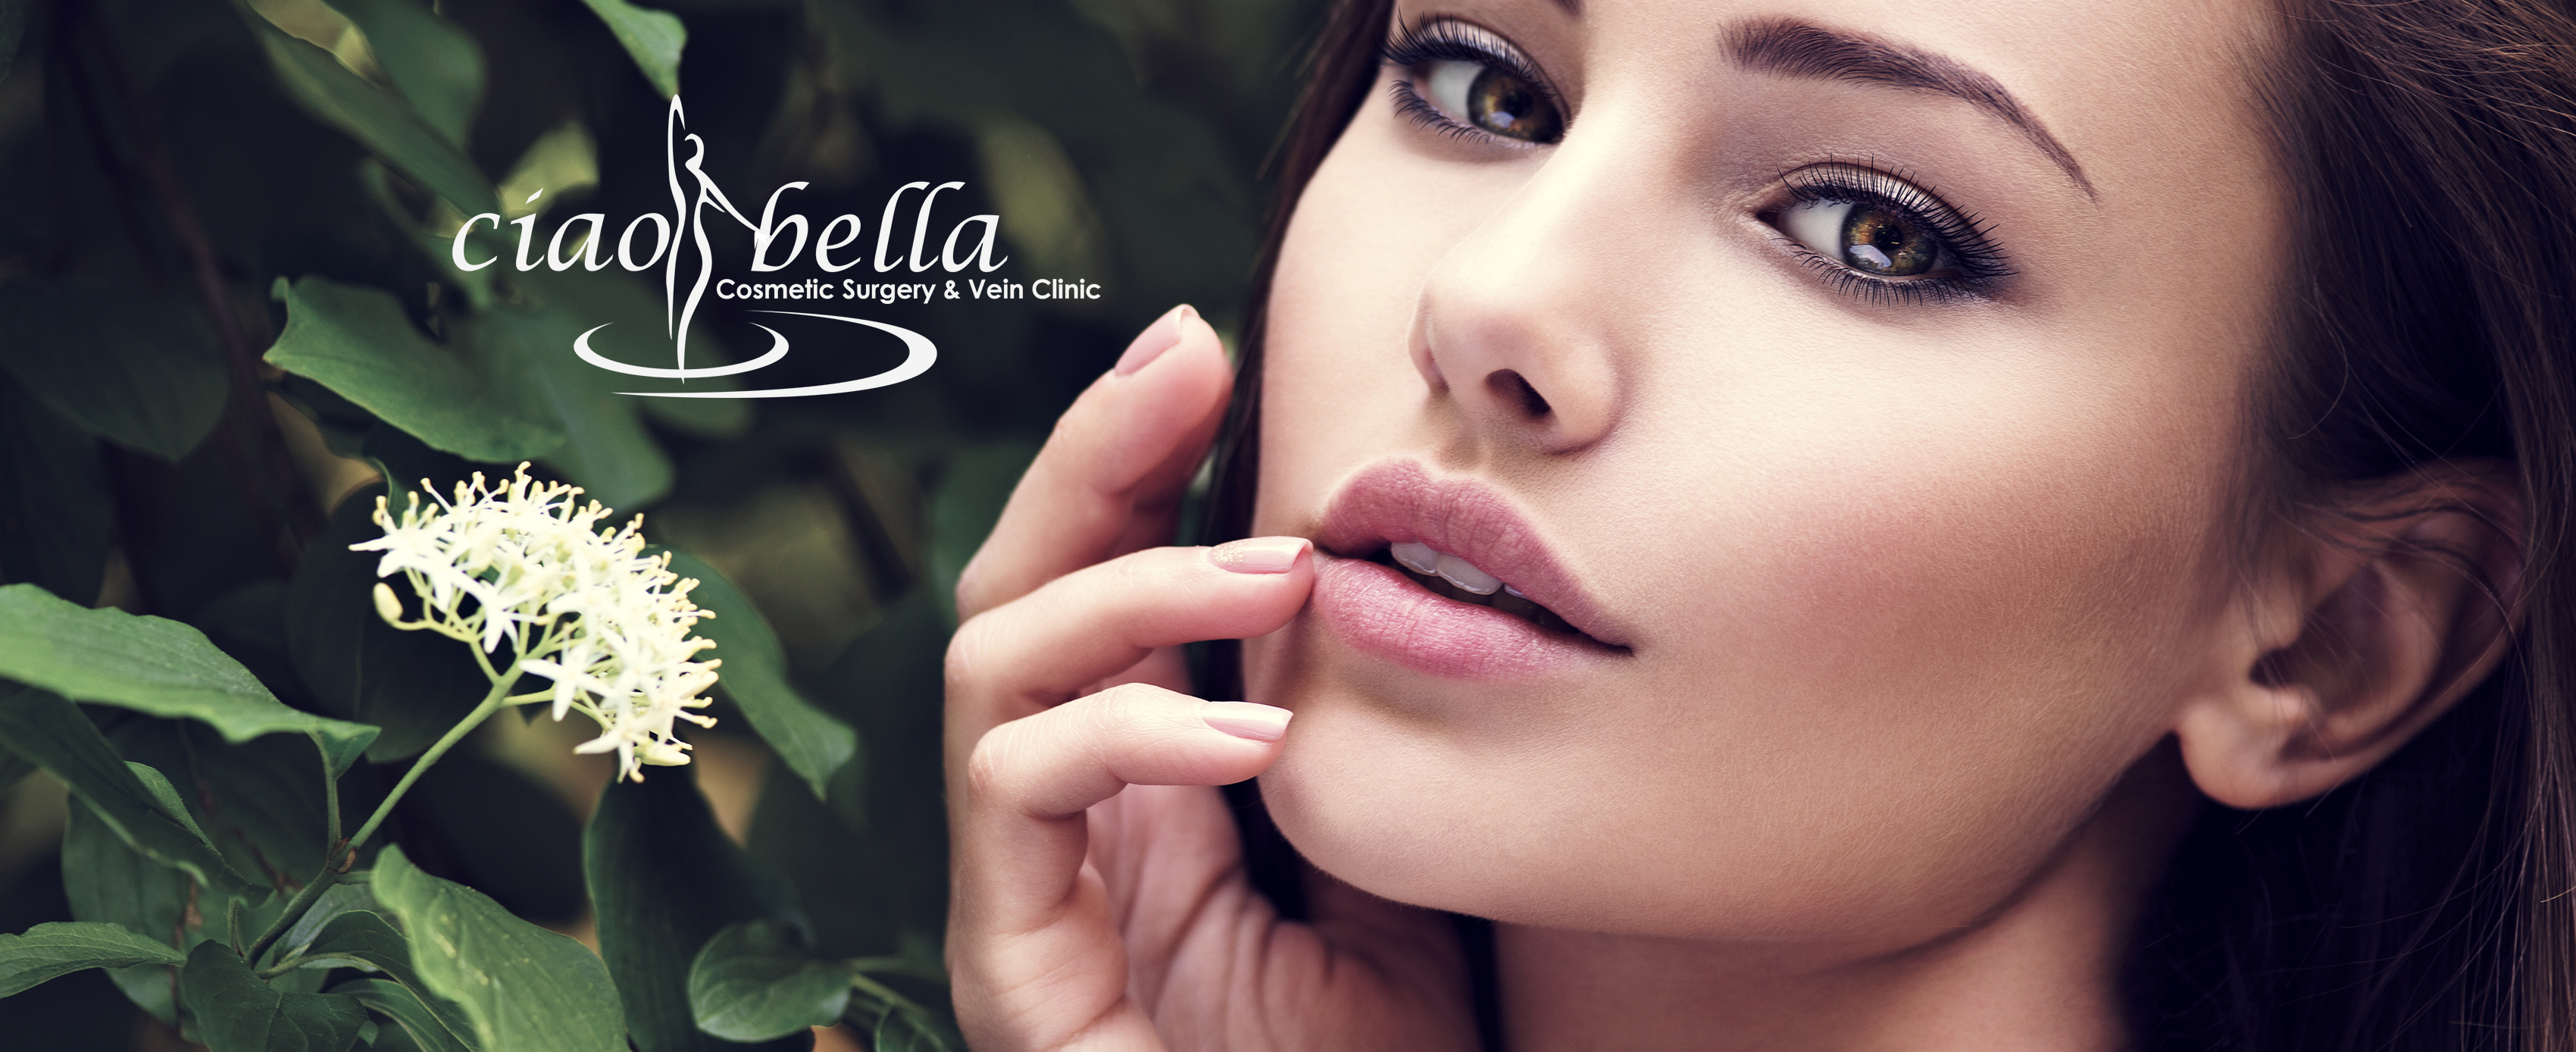 Ciao Bella Cosmetic Surgery reviews | Cosmetic Surgeons at 2310 W. Ray Rd. - Chandler AZ